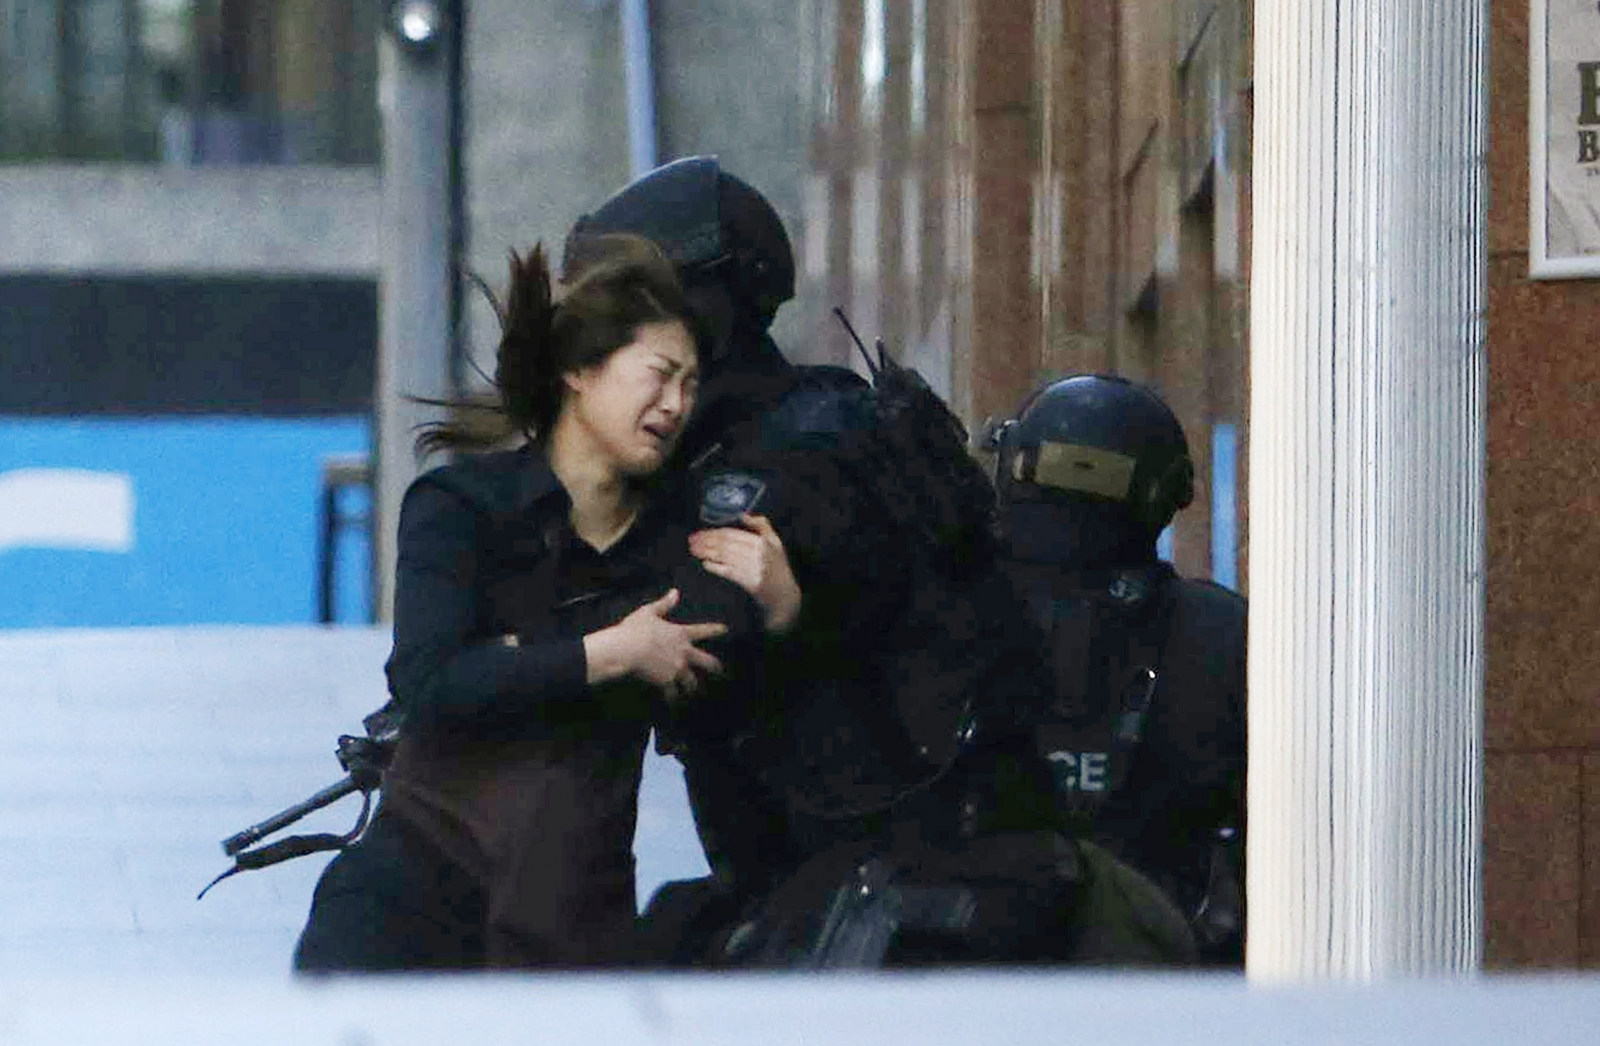 Sydney Seige: Hostages are seen fleeing Lindt Café